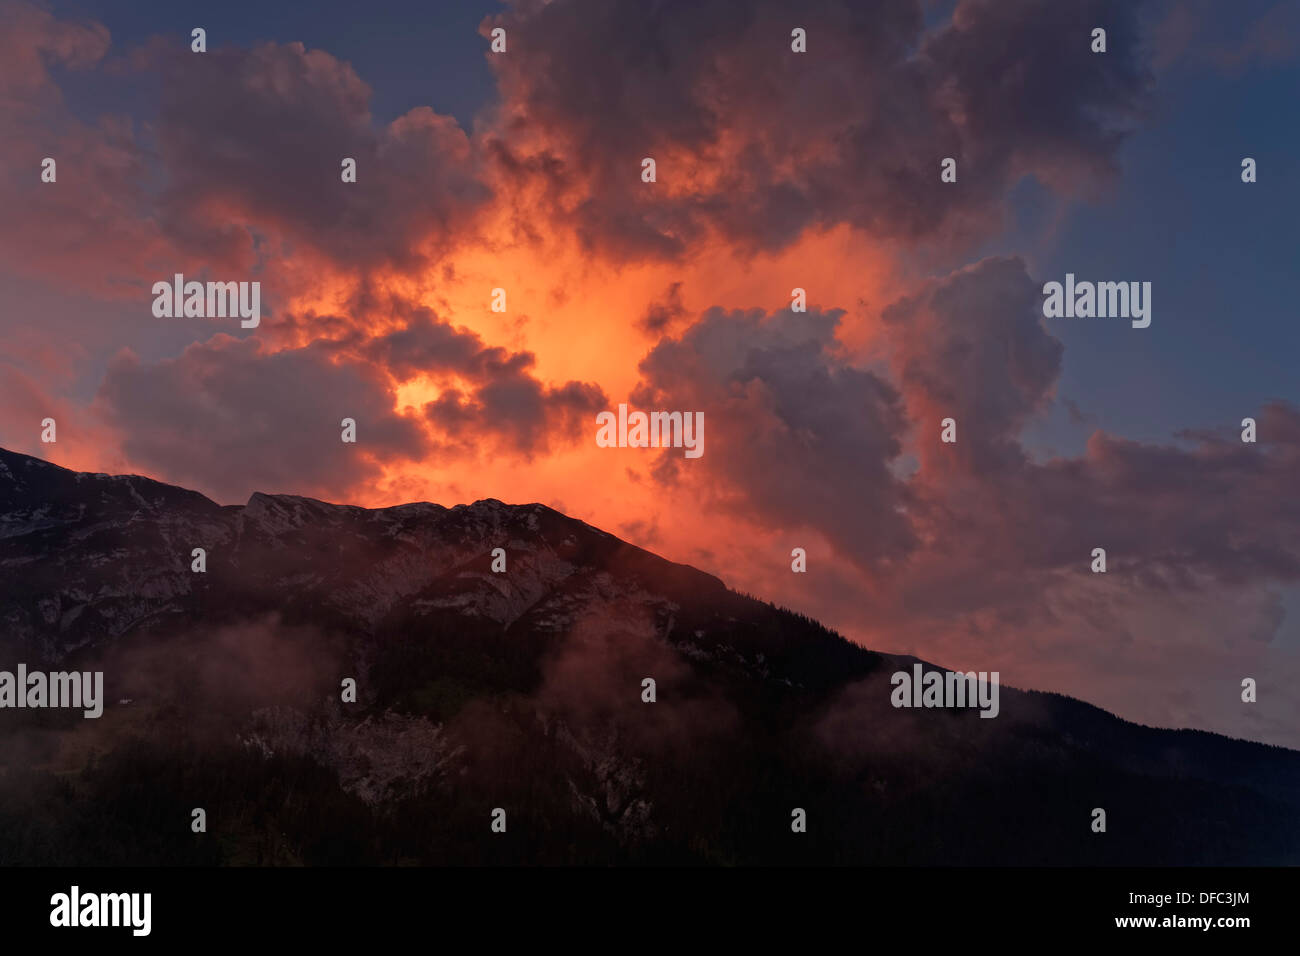 Austria, Tyrol, View of Achenkirch at sunset - Stock Image